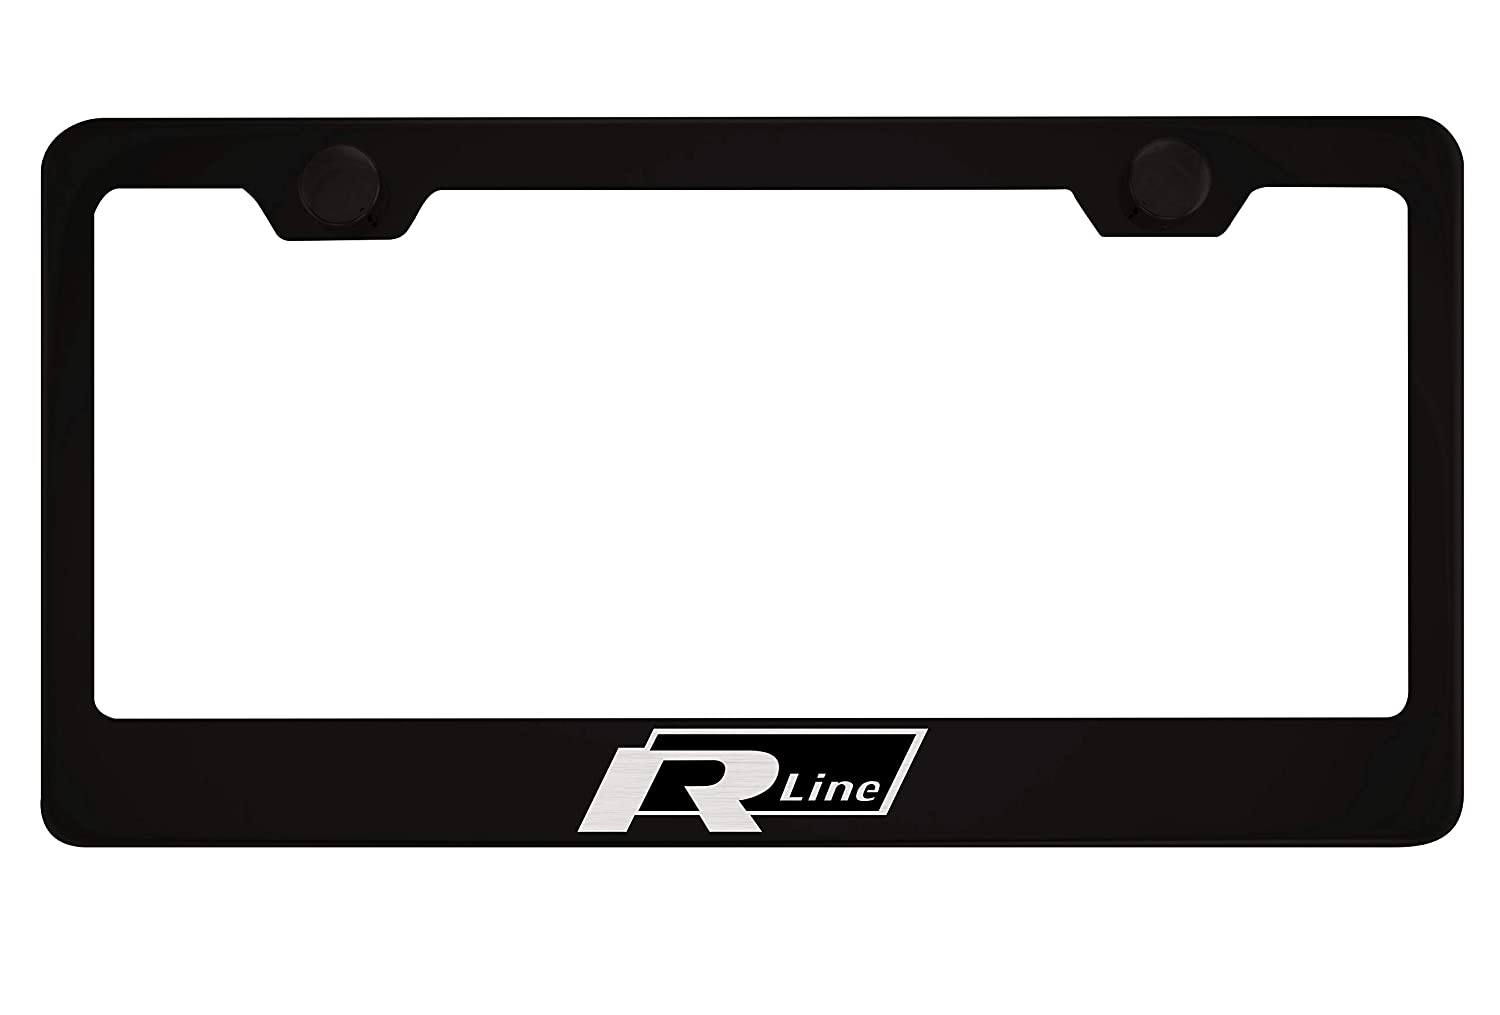 Volkswagen R Line Black License Plate Frame with Caps PCR